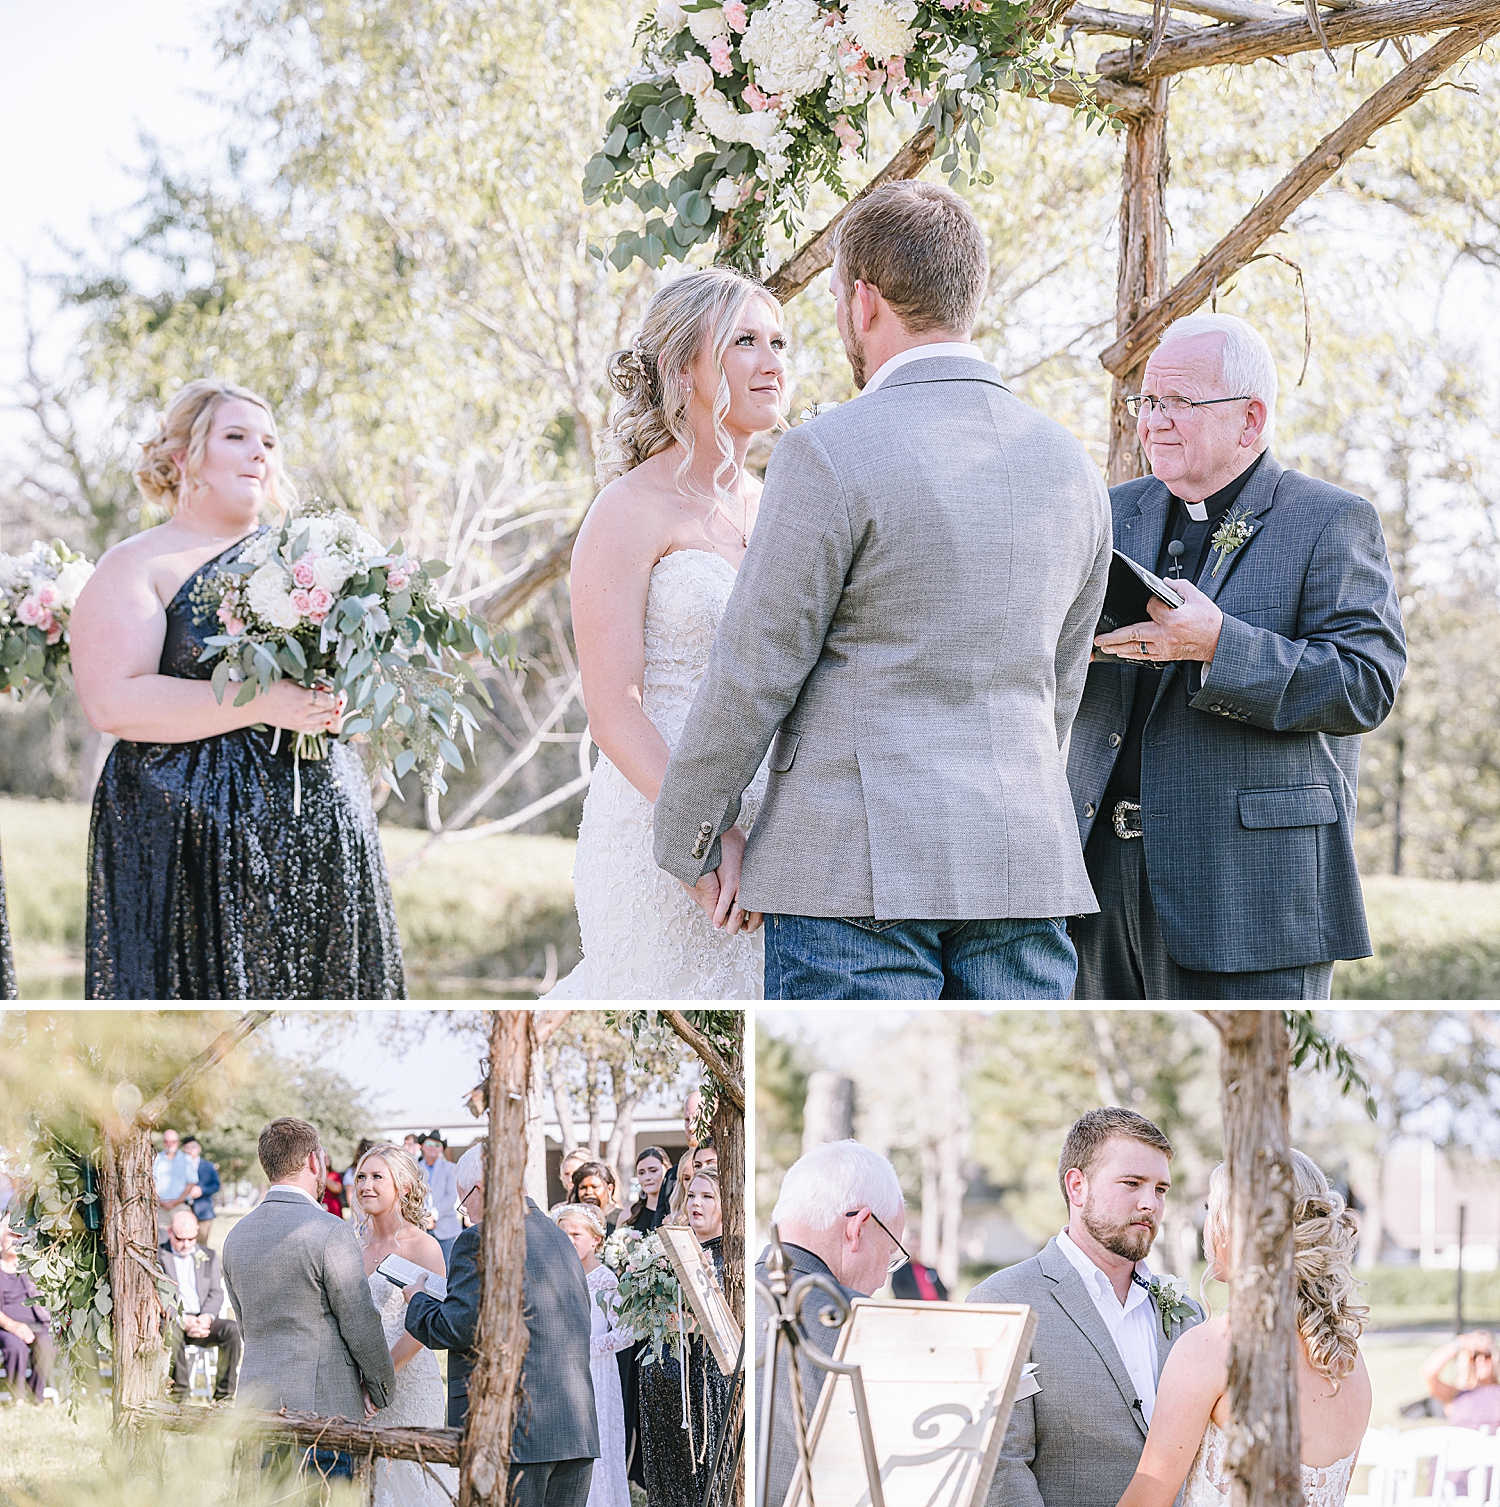 Rackler-Ranch-LaVernia-Texas-Wedding-Carly-Barton-Photography_0086.jpg